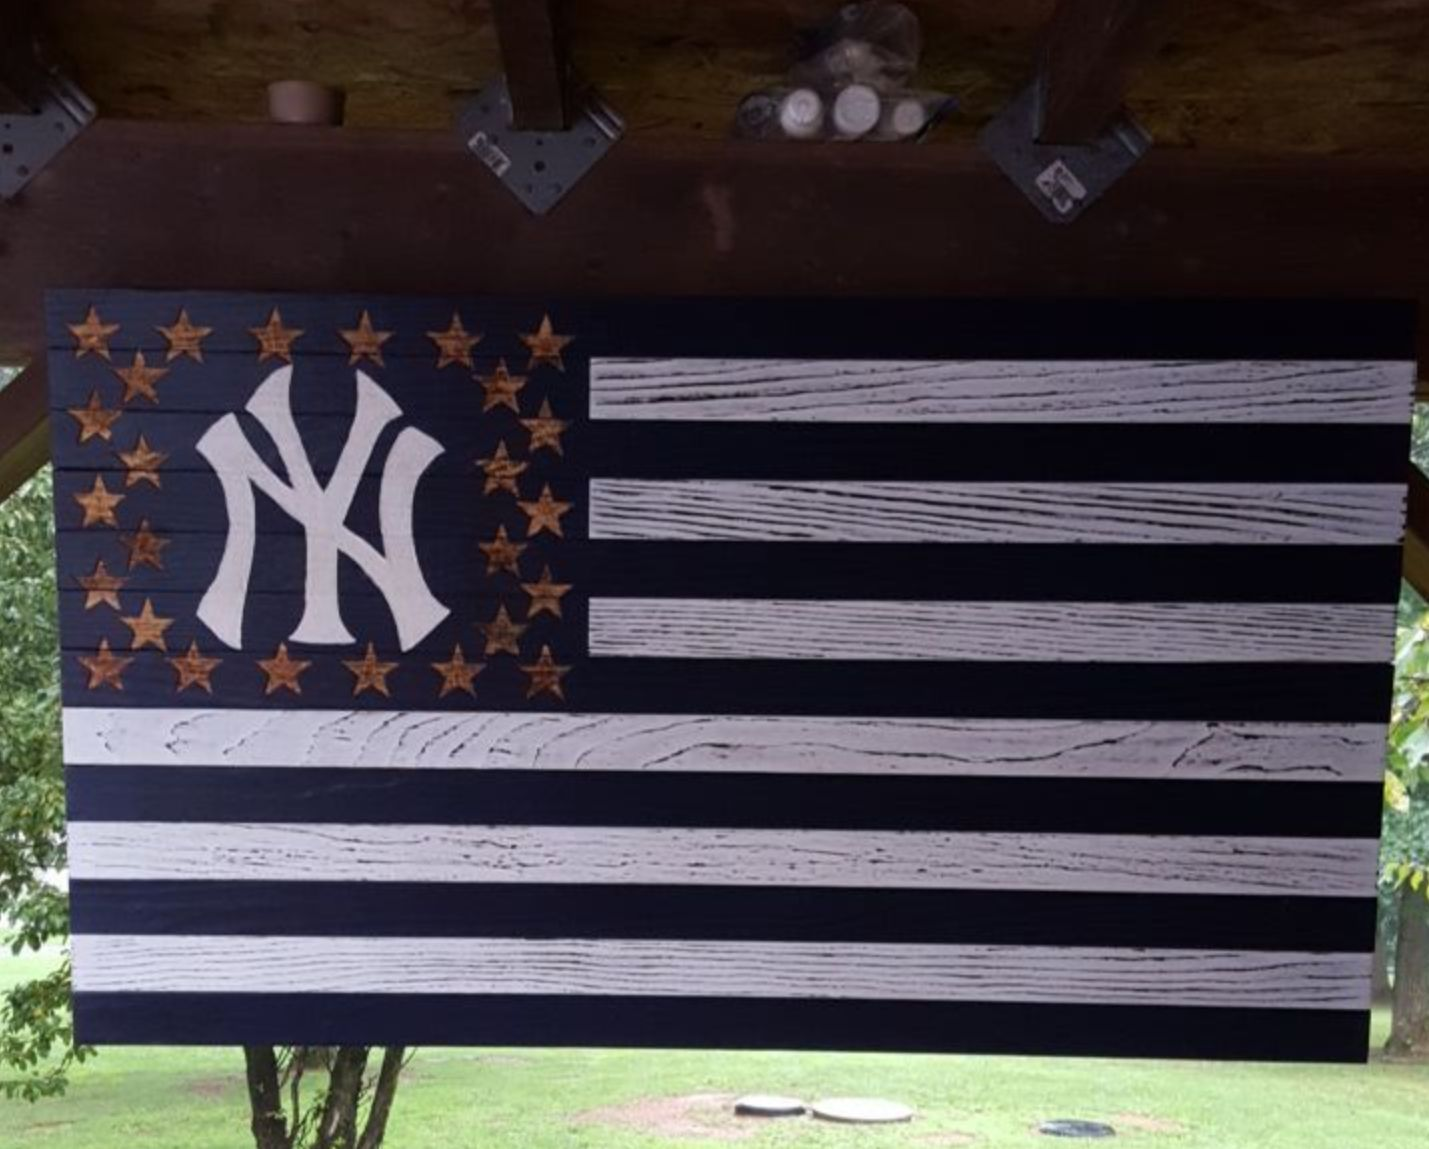 Handmade From Pine Board New York Yankees Rustic American Flag Measures Approximately 22x40 And Is Ready To Ha Rustic American Flag Hand Carved Hand Painted